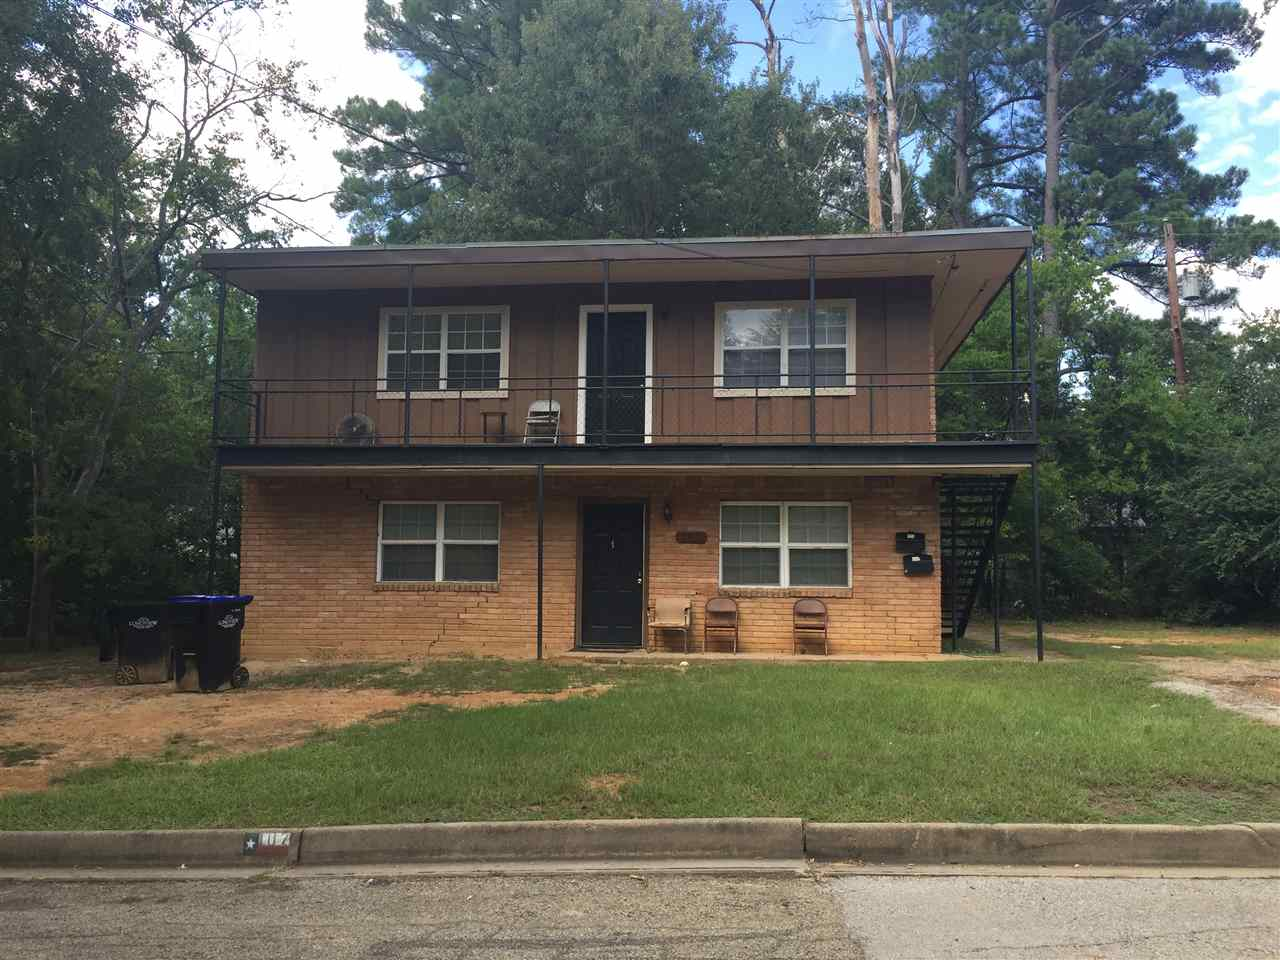 Great Investment Property! 2 Story duplex with 1 bedroom 1 bath unit downstairs and 1 bedroom 1 bath unit upstairs. Both units are currently rented at $450 each!